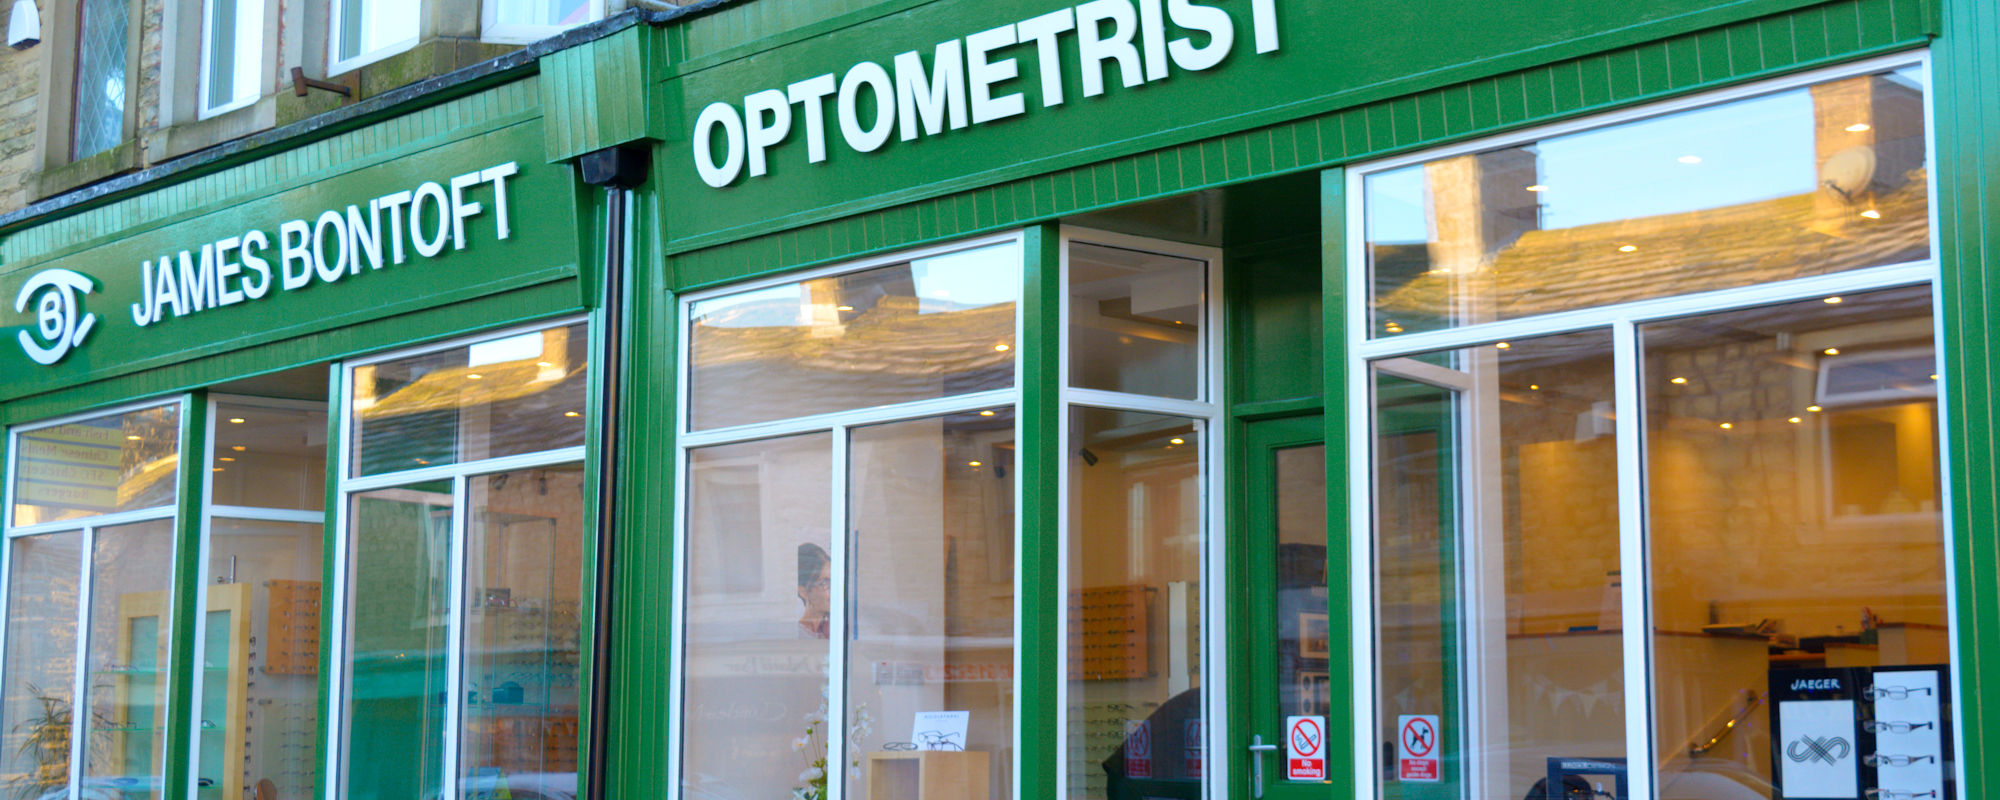 East Marton's local optician - James Bontoft in Barnoldswick